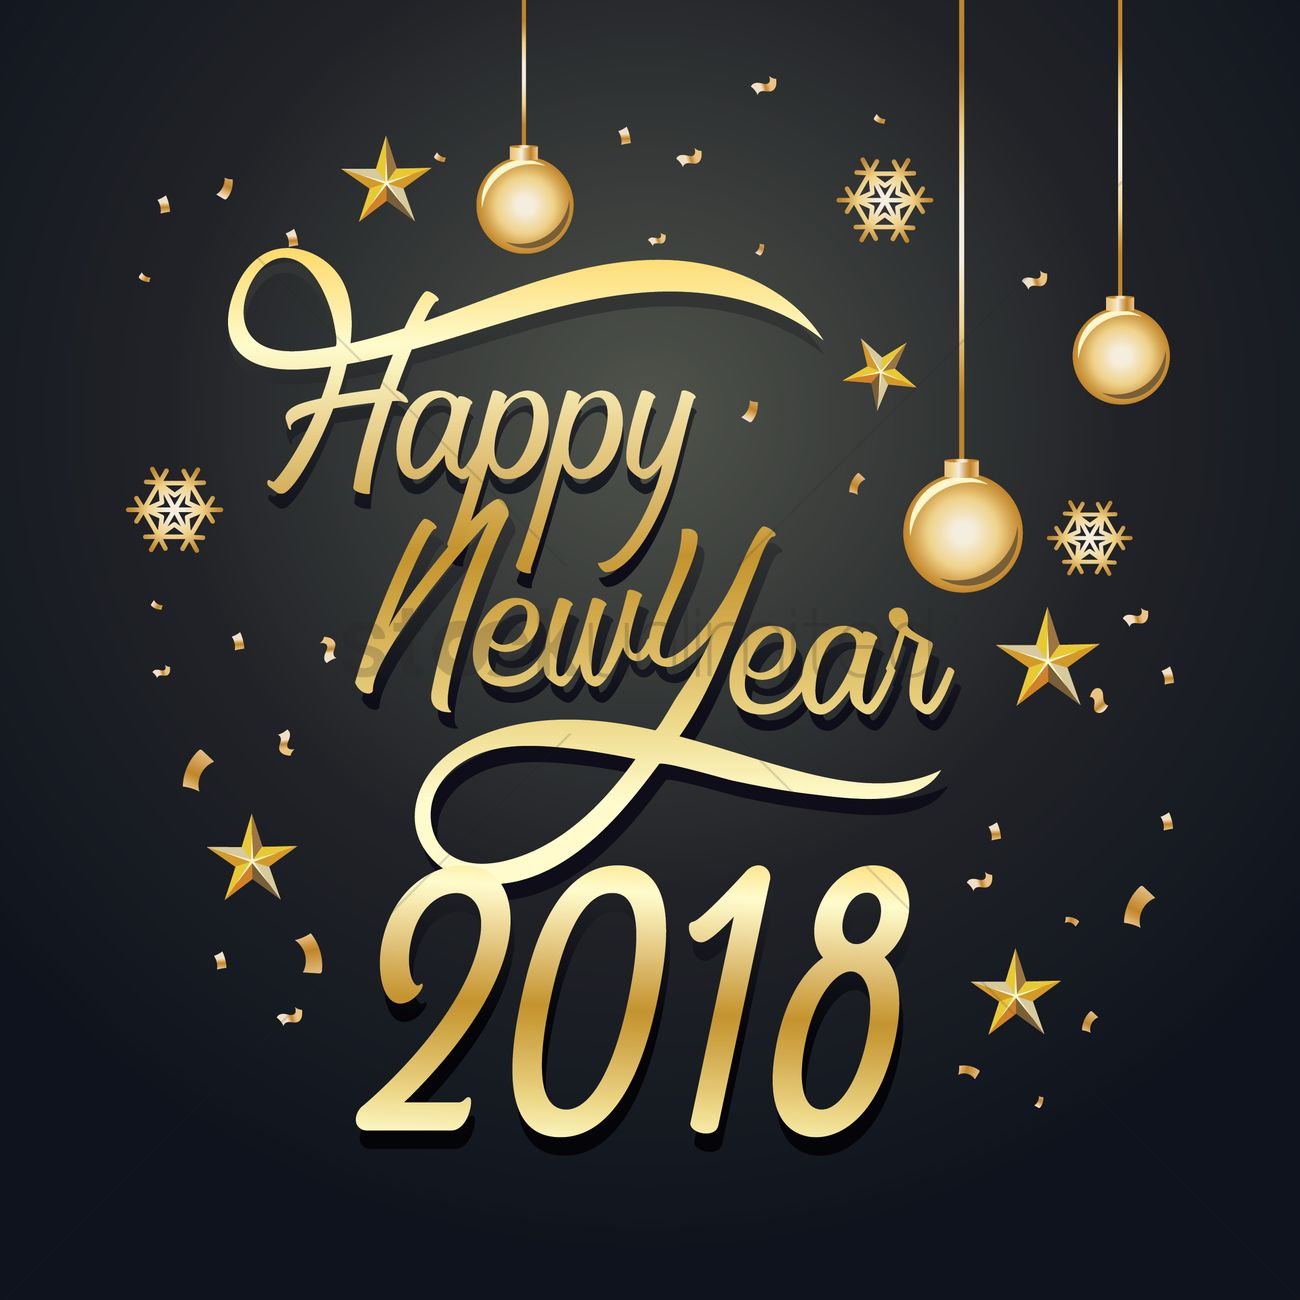 Happy new year 2018 Vector Image   2078765   StockUnlimited happy new year 2018 vector graphic